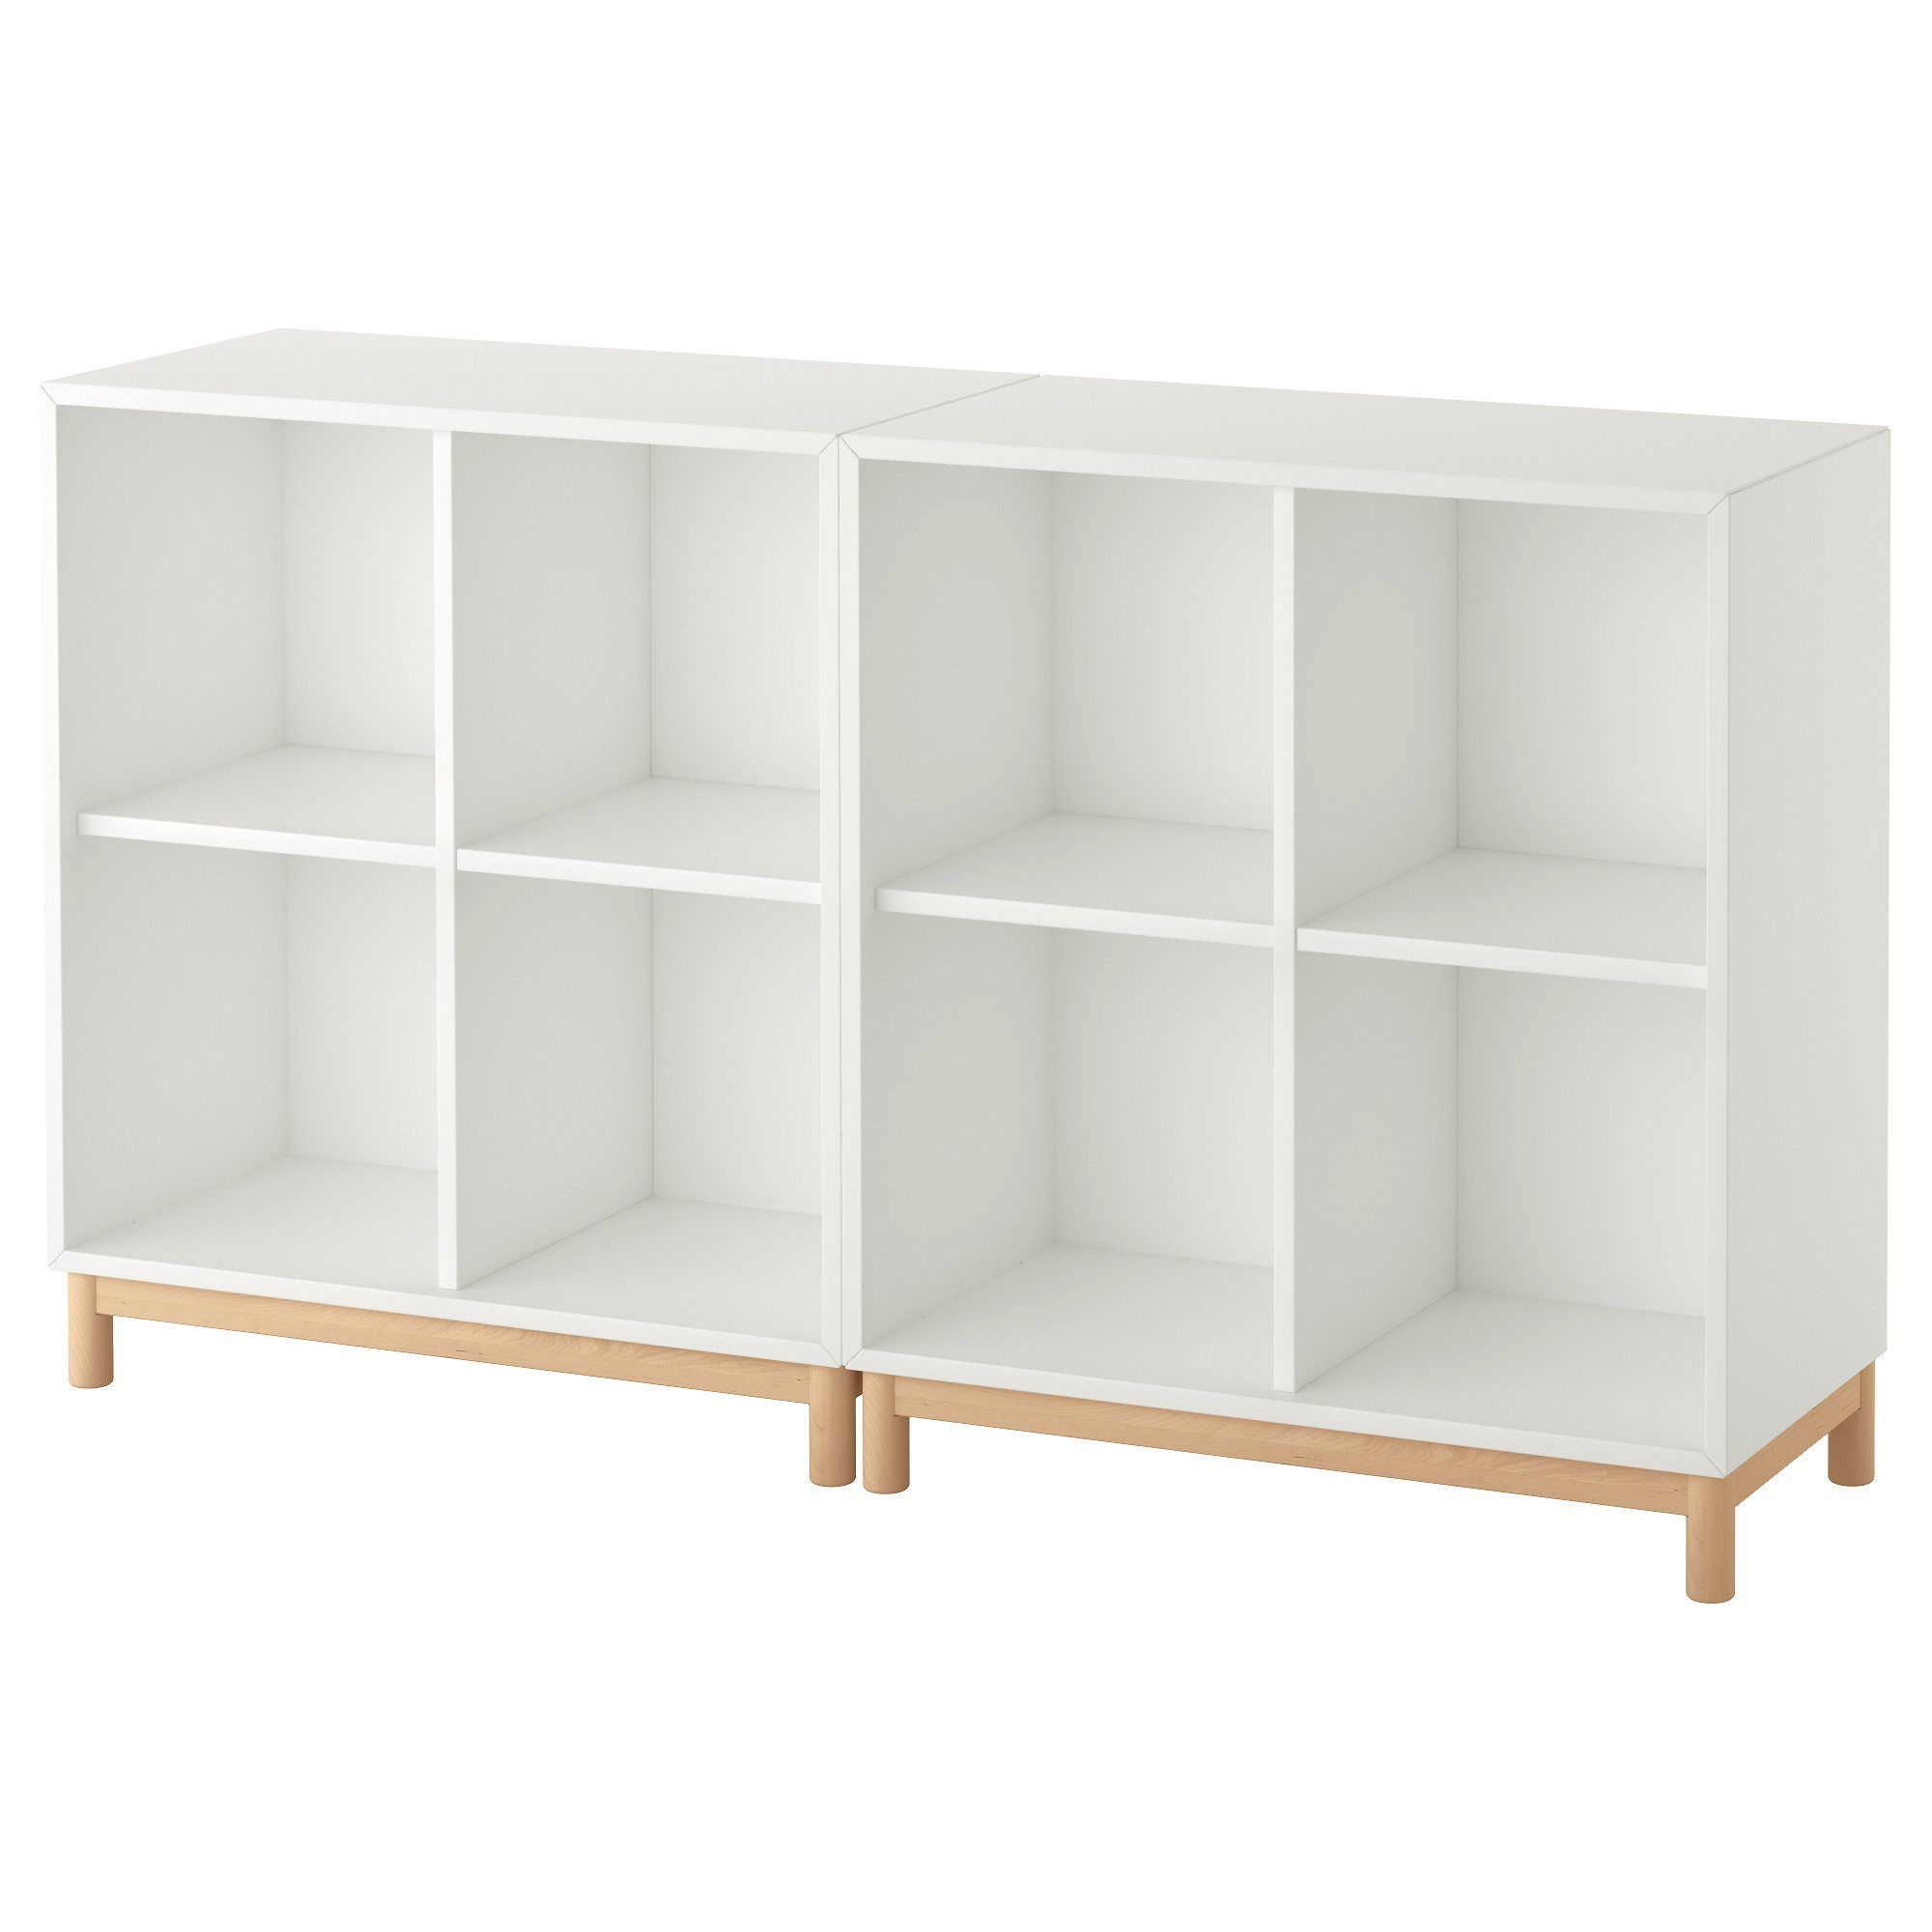 Range Vinyle Ikea New Ikea Eket Shelves New Vinyl Storage Option Djworx